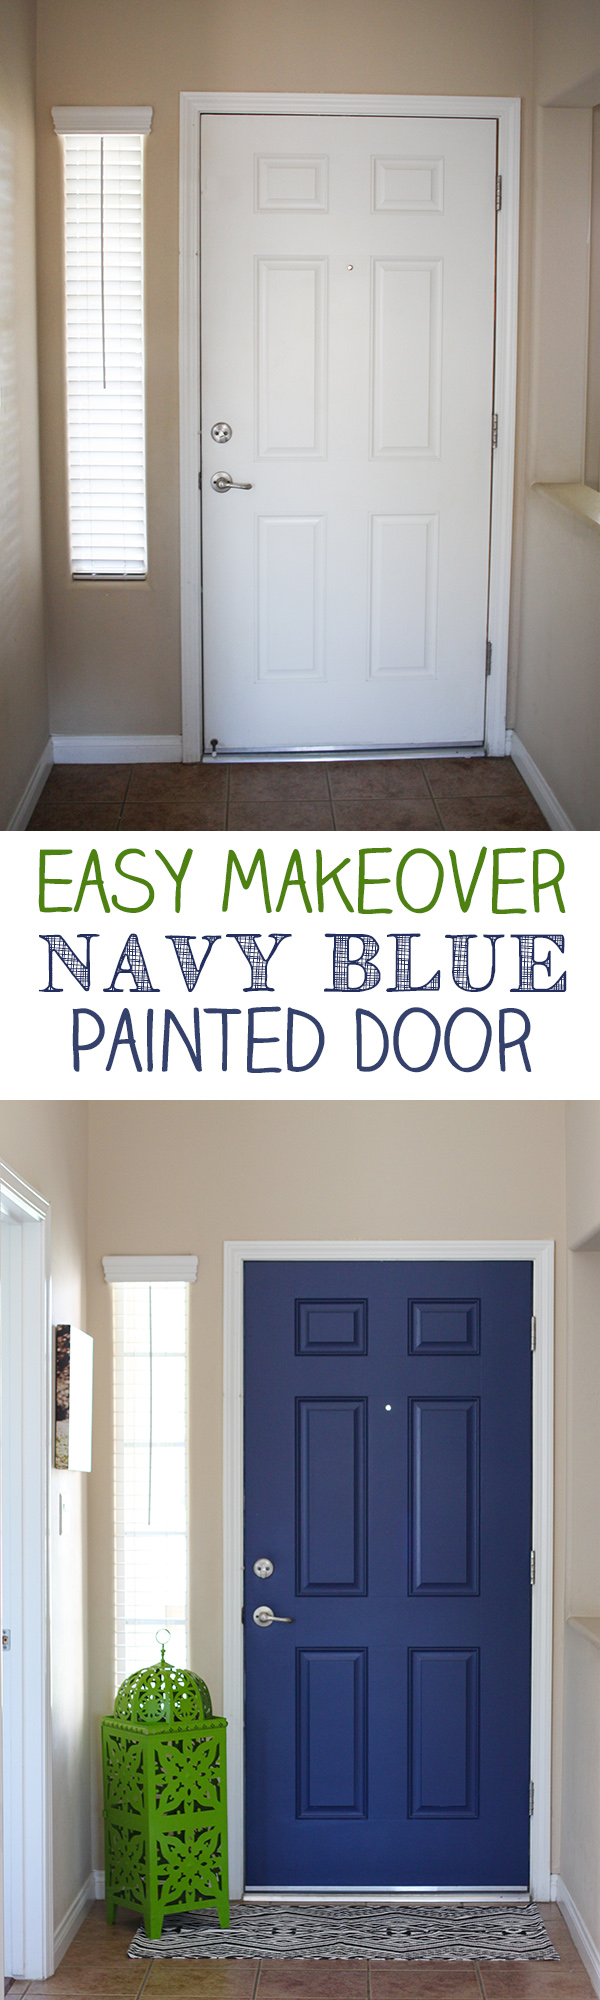 inside front door colors. Paint Both Sides Of Your Front Door For A POP Color - Navy Blue Interior Inside Colors L